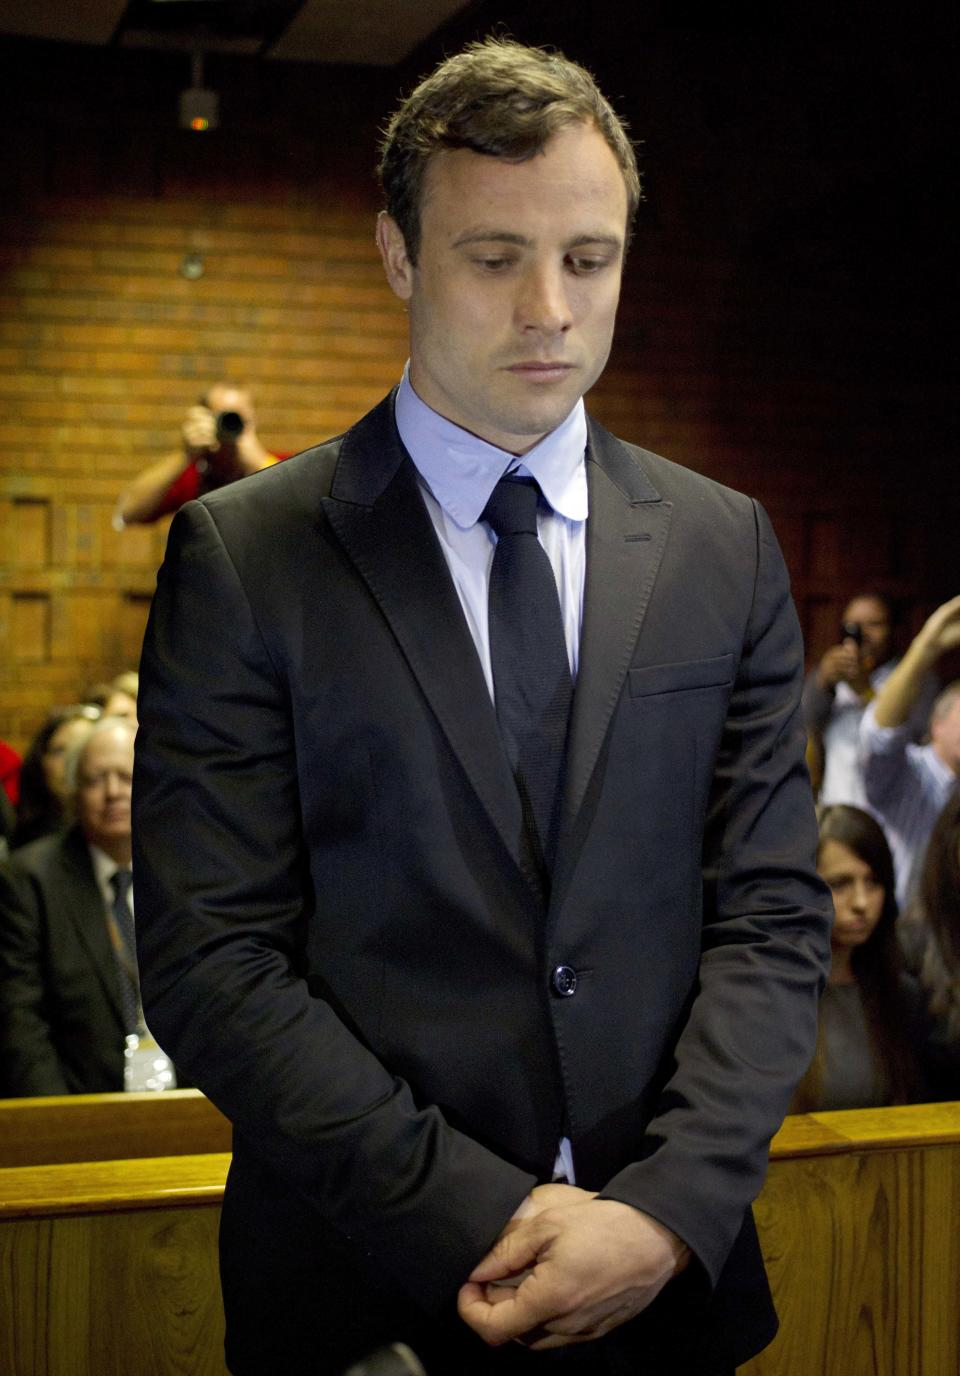 Oscar Pistorius appears at a court in Pretoria, South Africa, Monday, Aug. 19, 2013. Pistorius arrived at the South African court ahead of the expected indictment of the double-amputee Olympian on a premeditated murder charge. (AP Photo/Themba Hadebe)